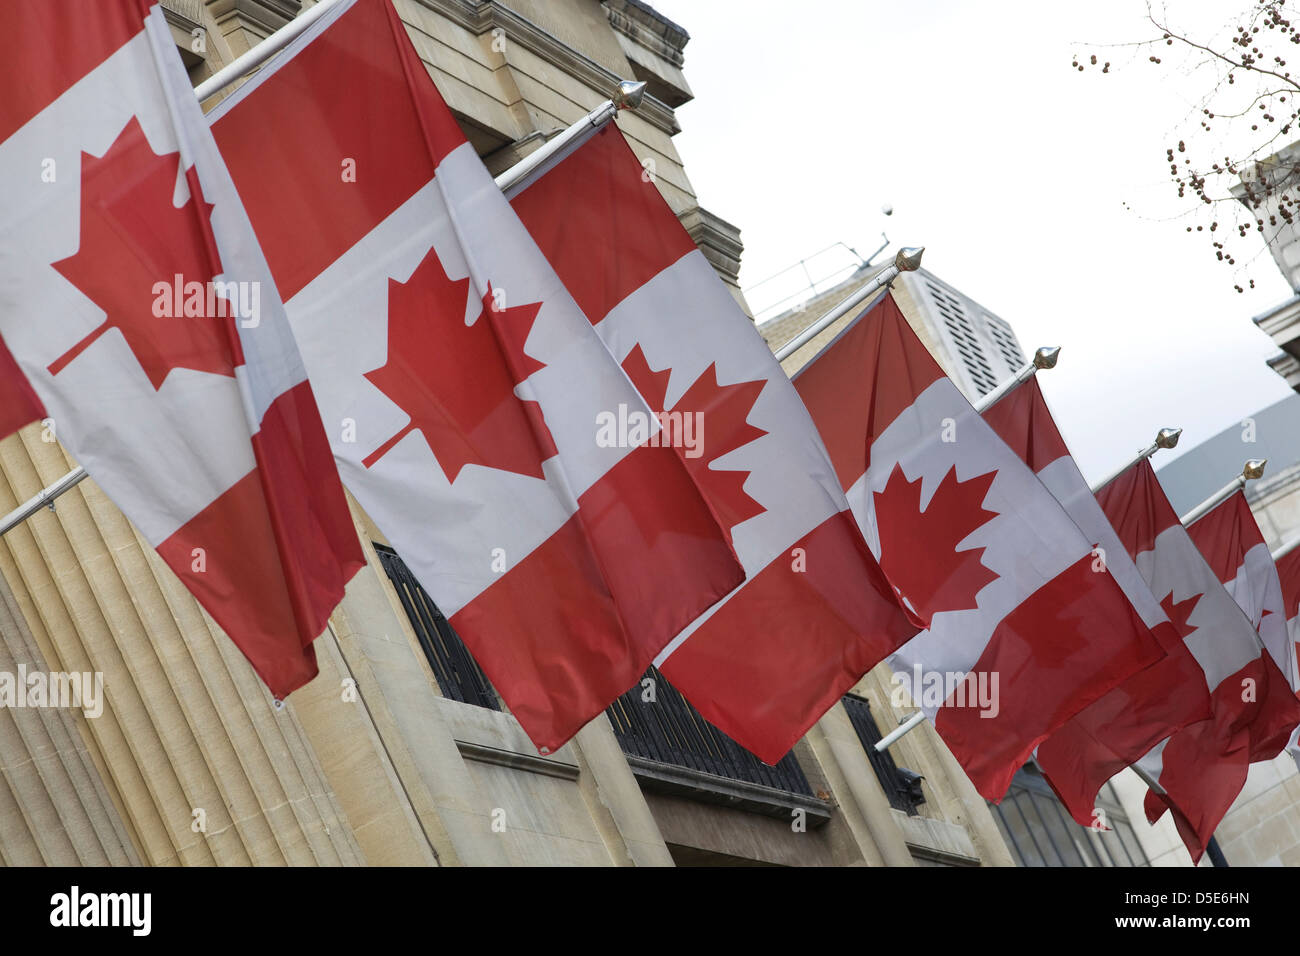 The National Flag of Canada flying at the Canadian embassy in London England Stock Photo